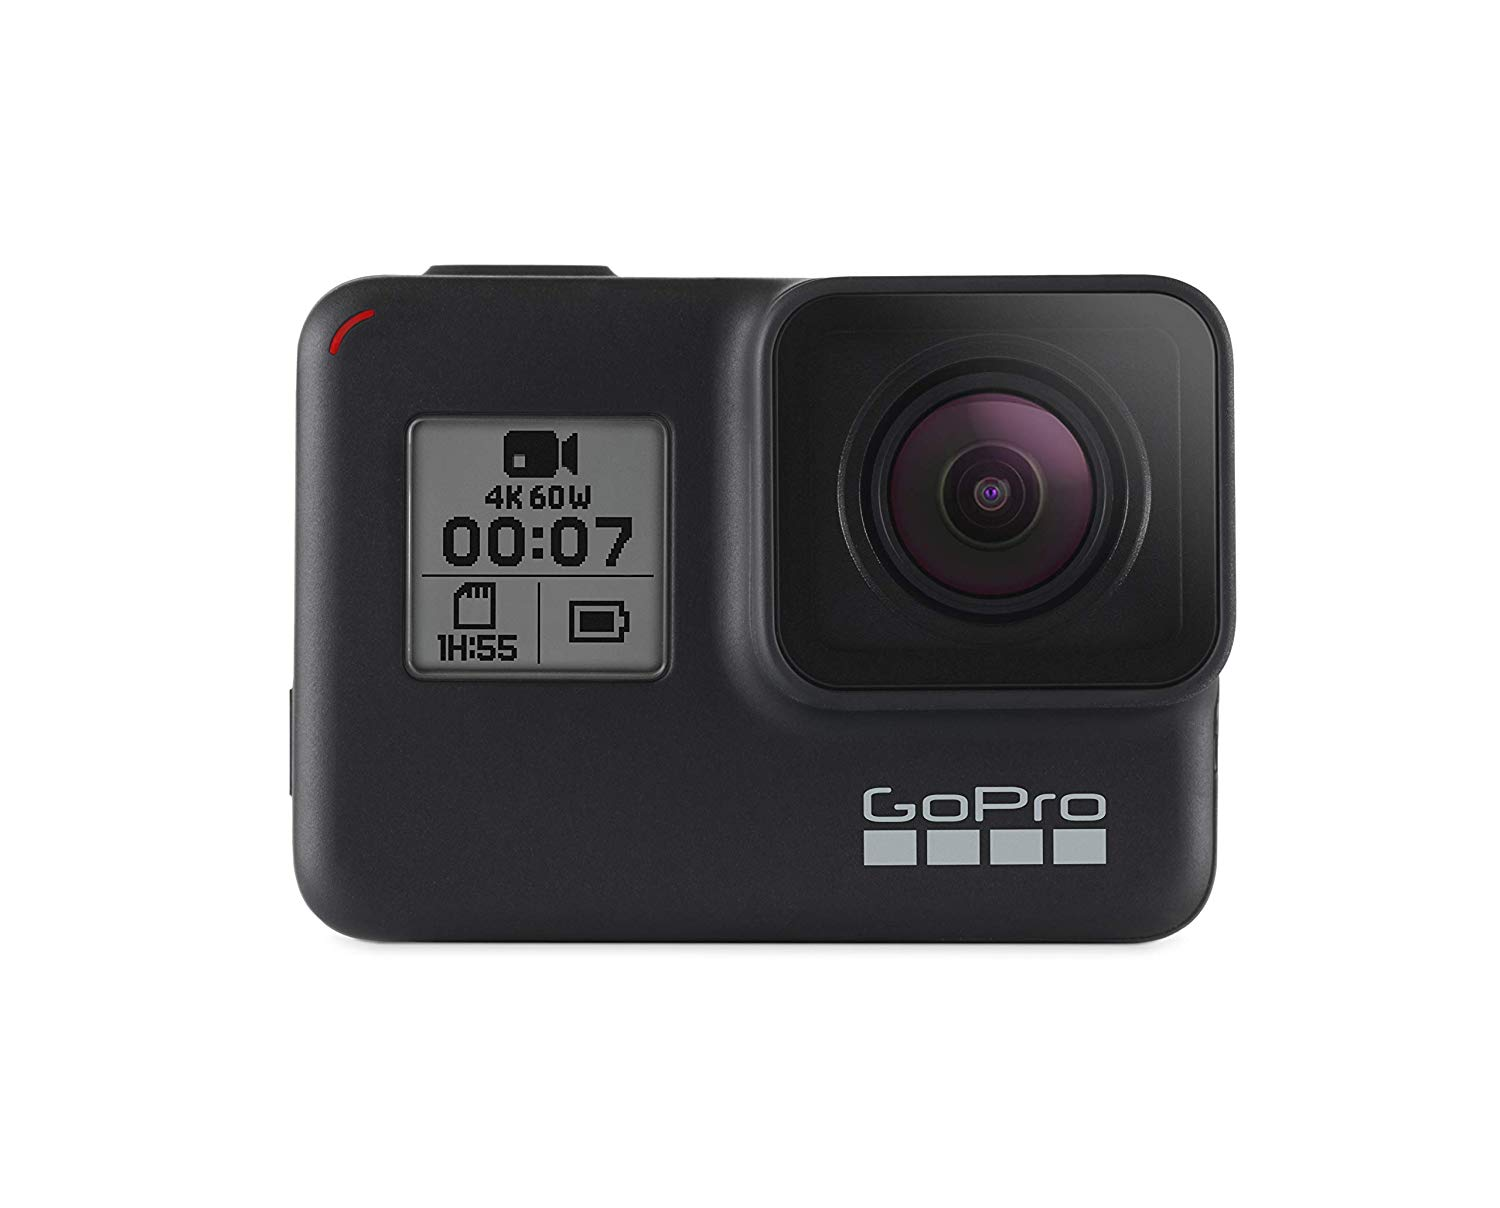 GoPro HERO7 Black — Waterproof Digital Action Camera with Touch Screen